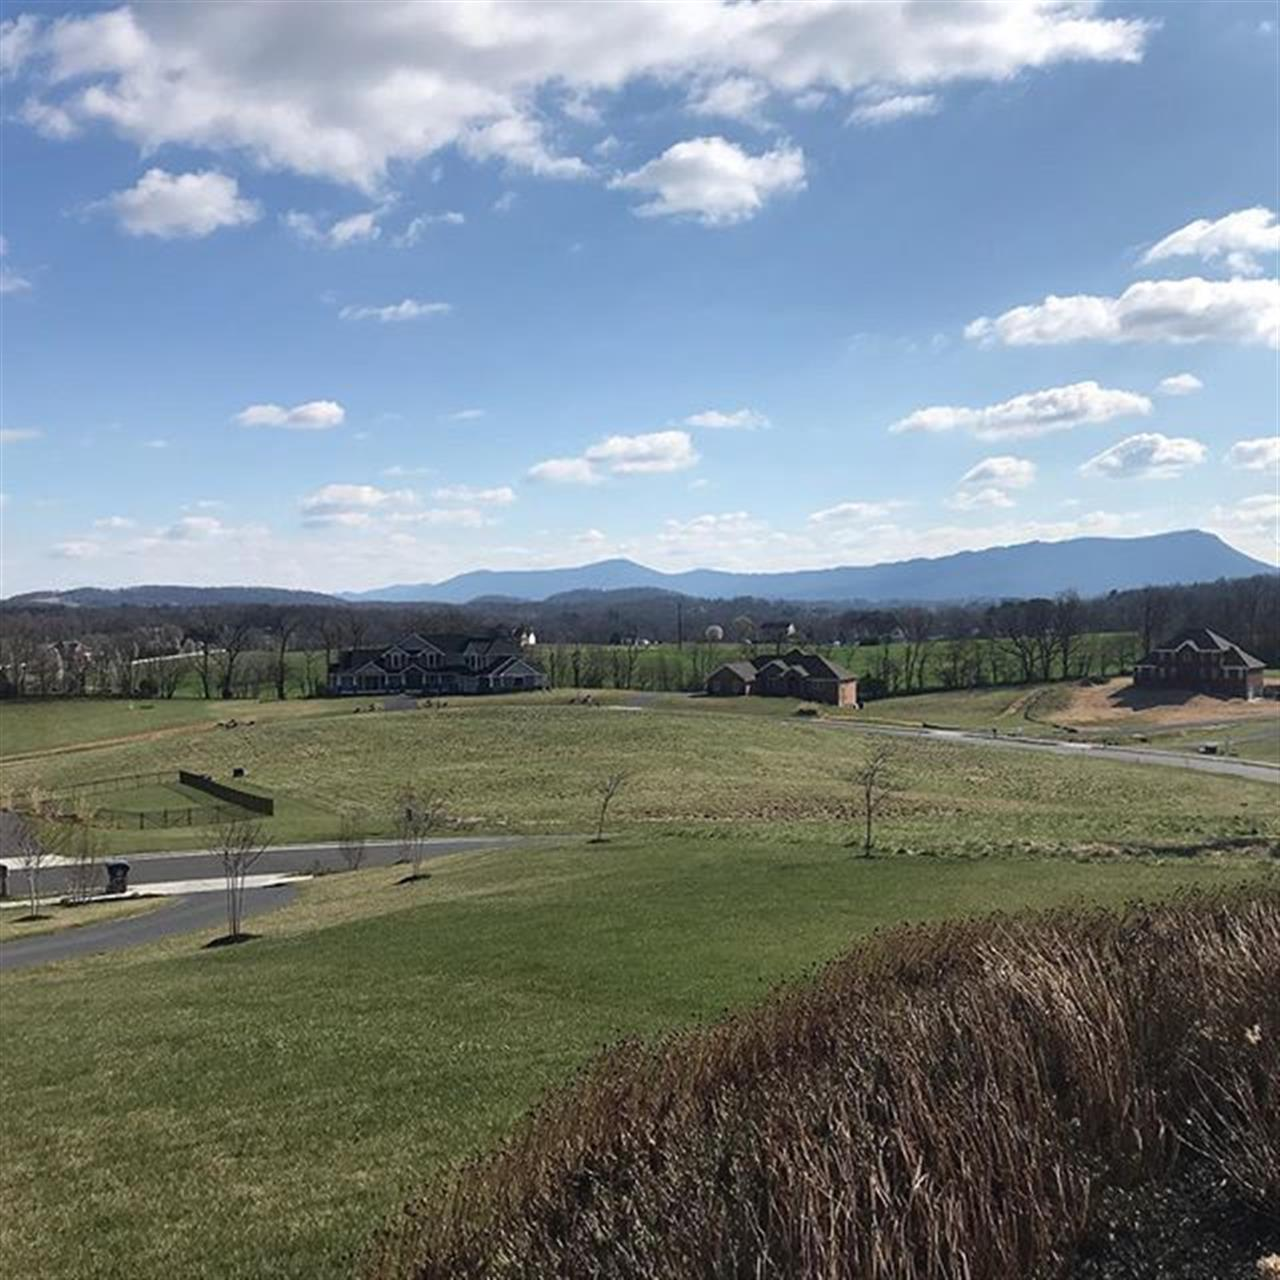 Started this beautiful spring day showing new buyers this amazing view (oh, and the awesome house behind it too!!) #thespringsatosceola #huntingtonsprings #olddominionrealty #rockinghamva #leadingrelocal #realestate #houseforsale #hopefullynotforlong